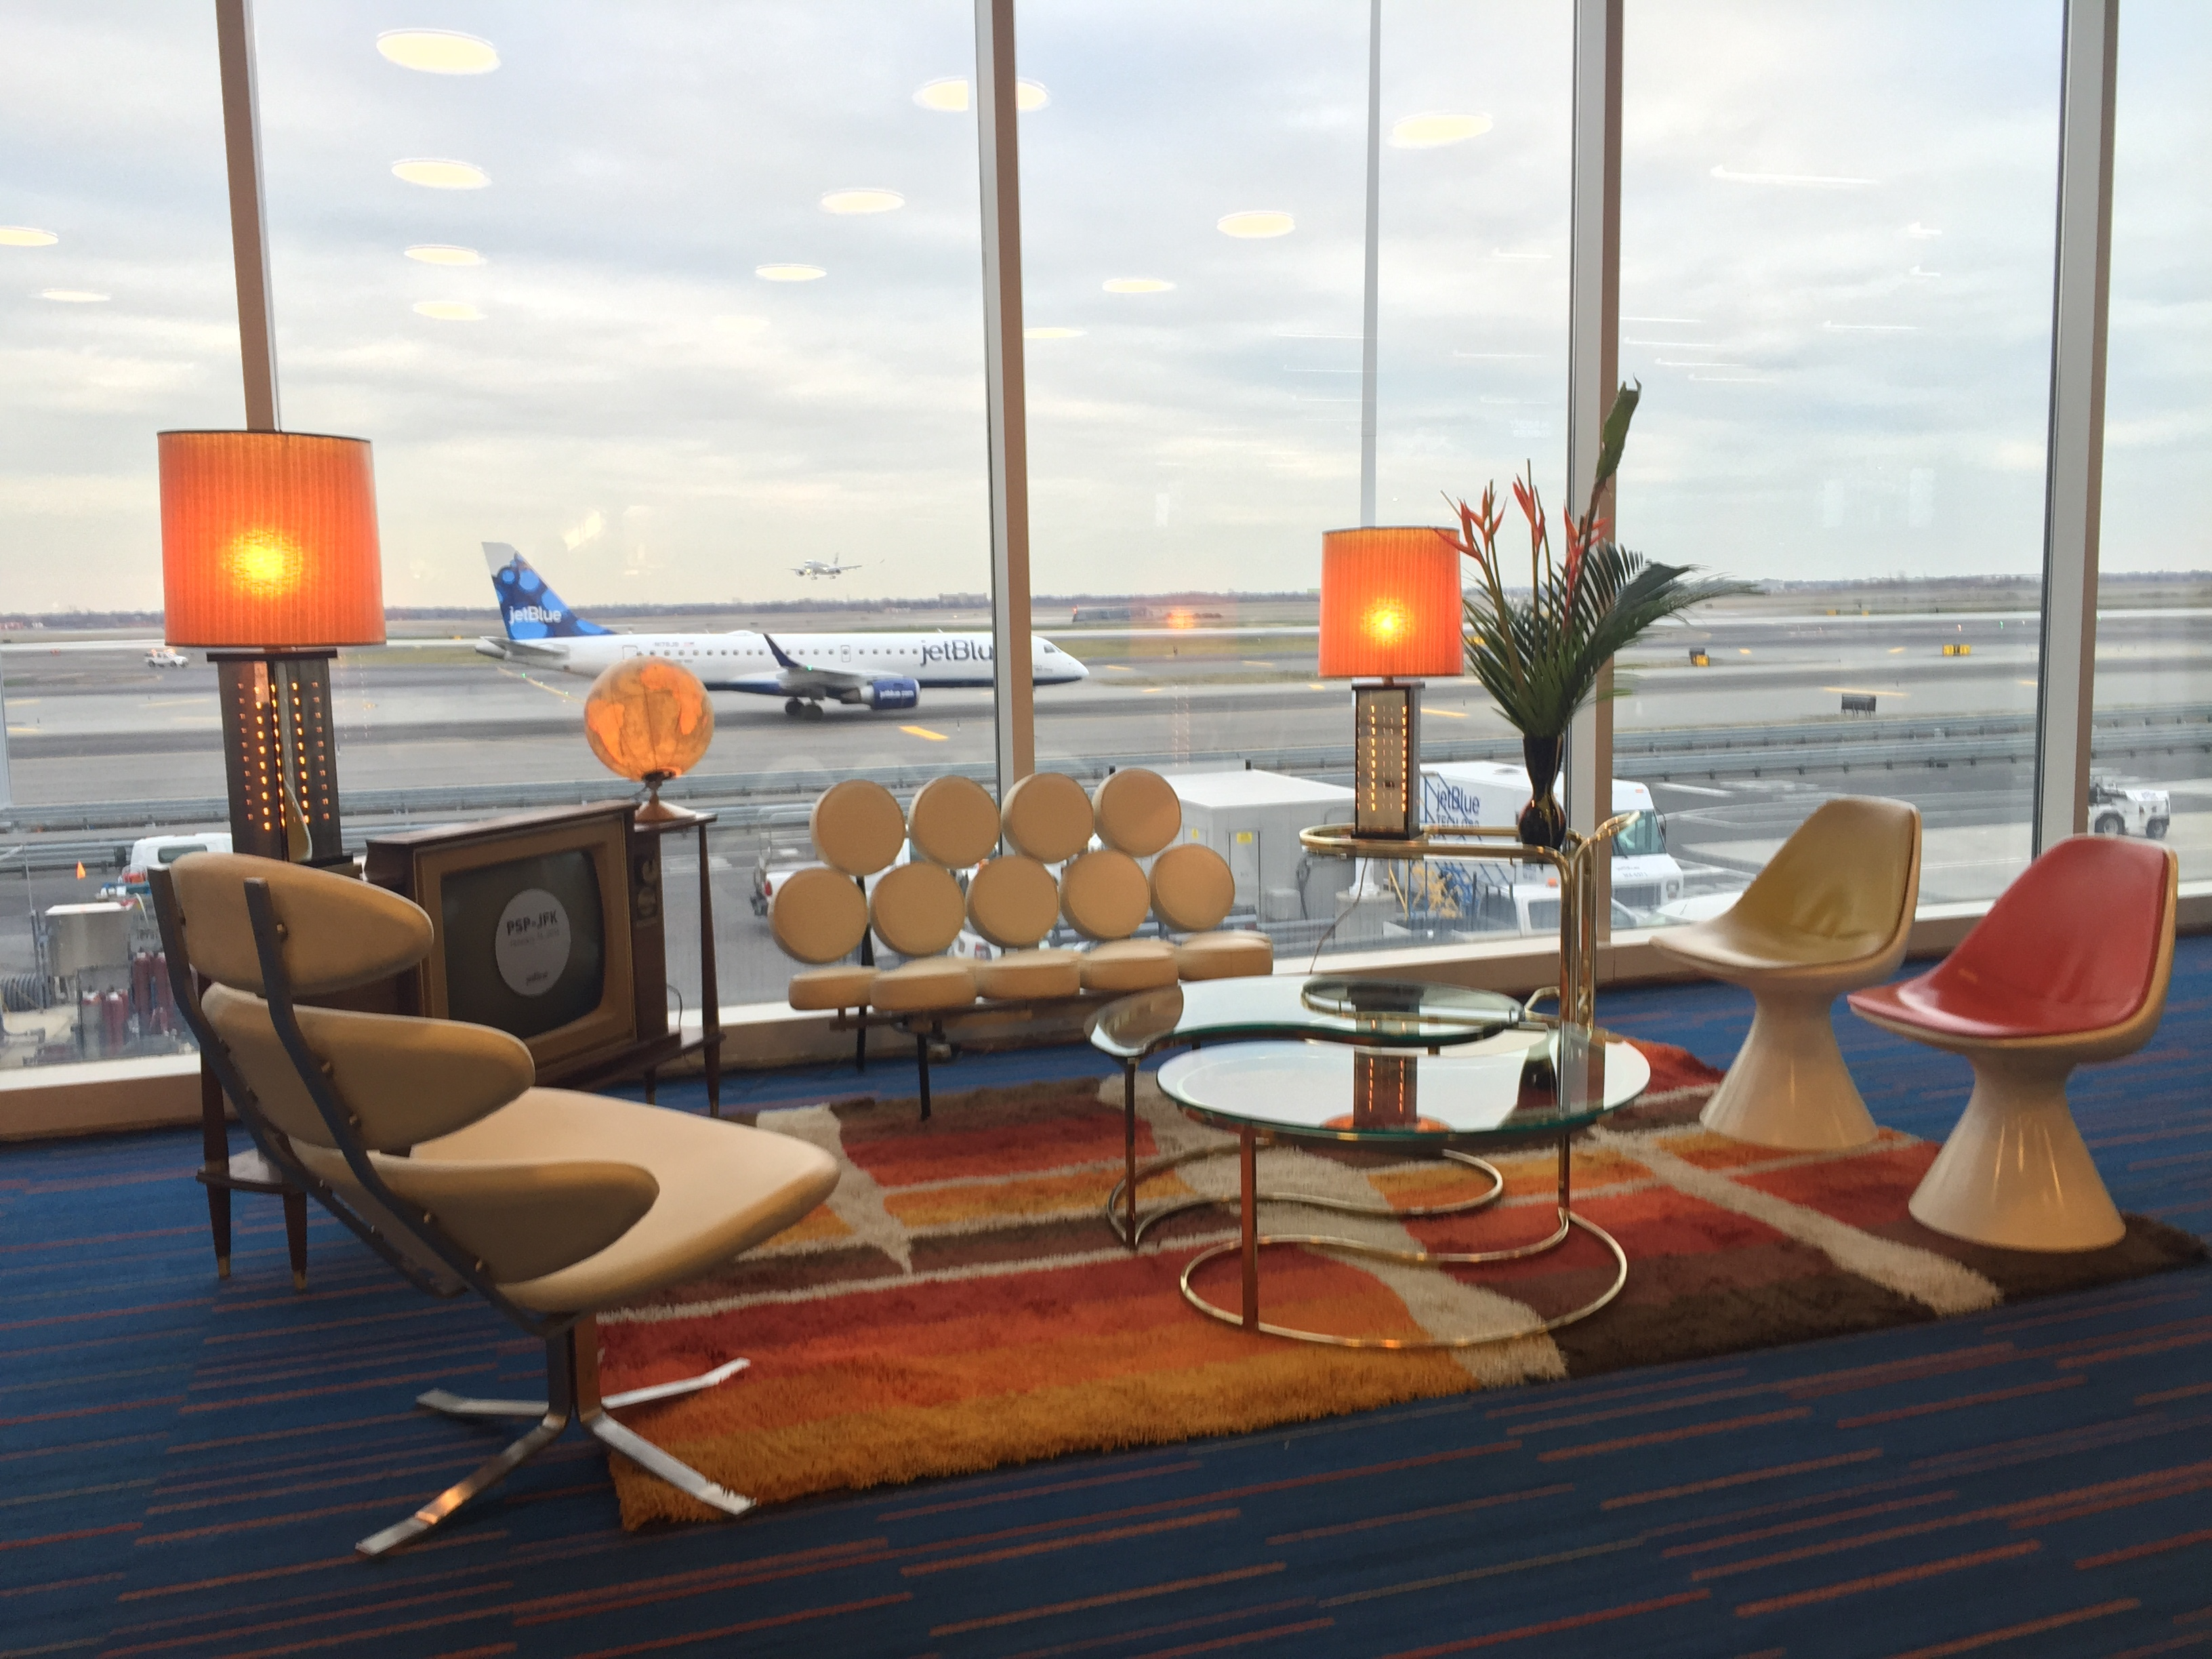 JetBlue Launches Palm Springs Service with Mid Century Modern Celebration    Business Wire. JetBlue Launches Palm Springs Service with Mid Century Modern